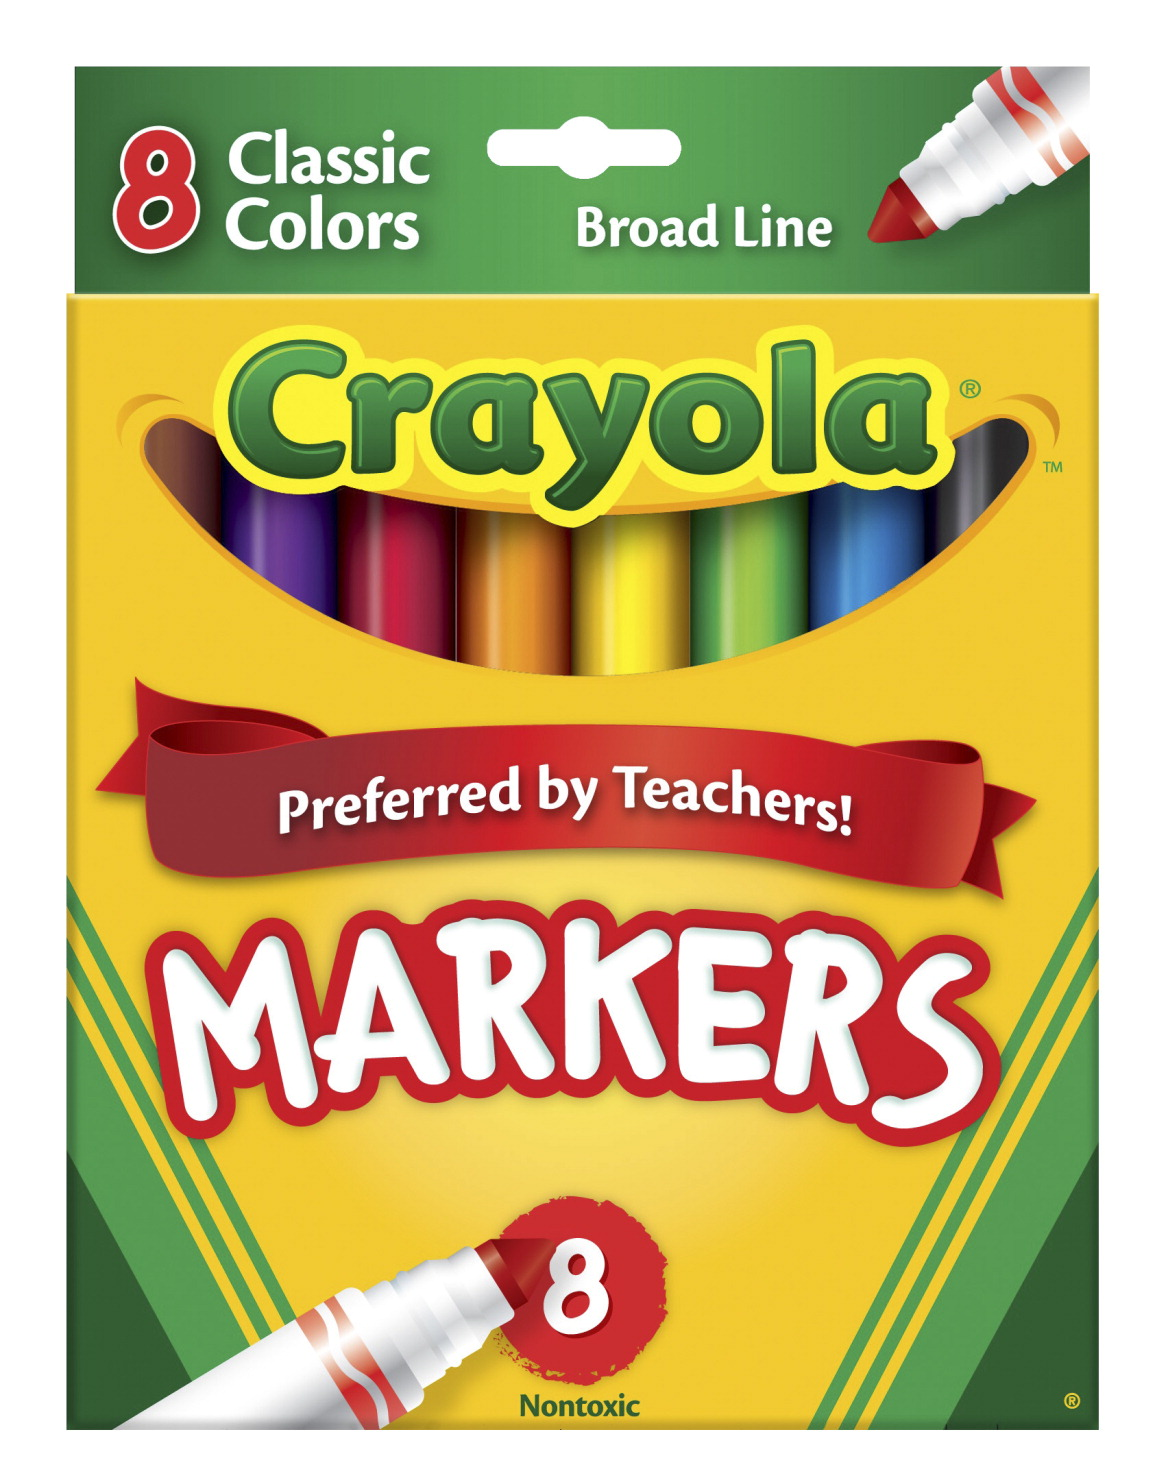 Crayola Original Broad Line Markers, Assorted Classic Colors, Set of 8